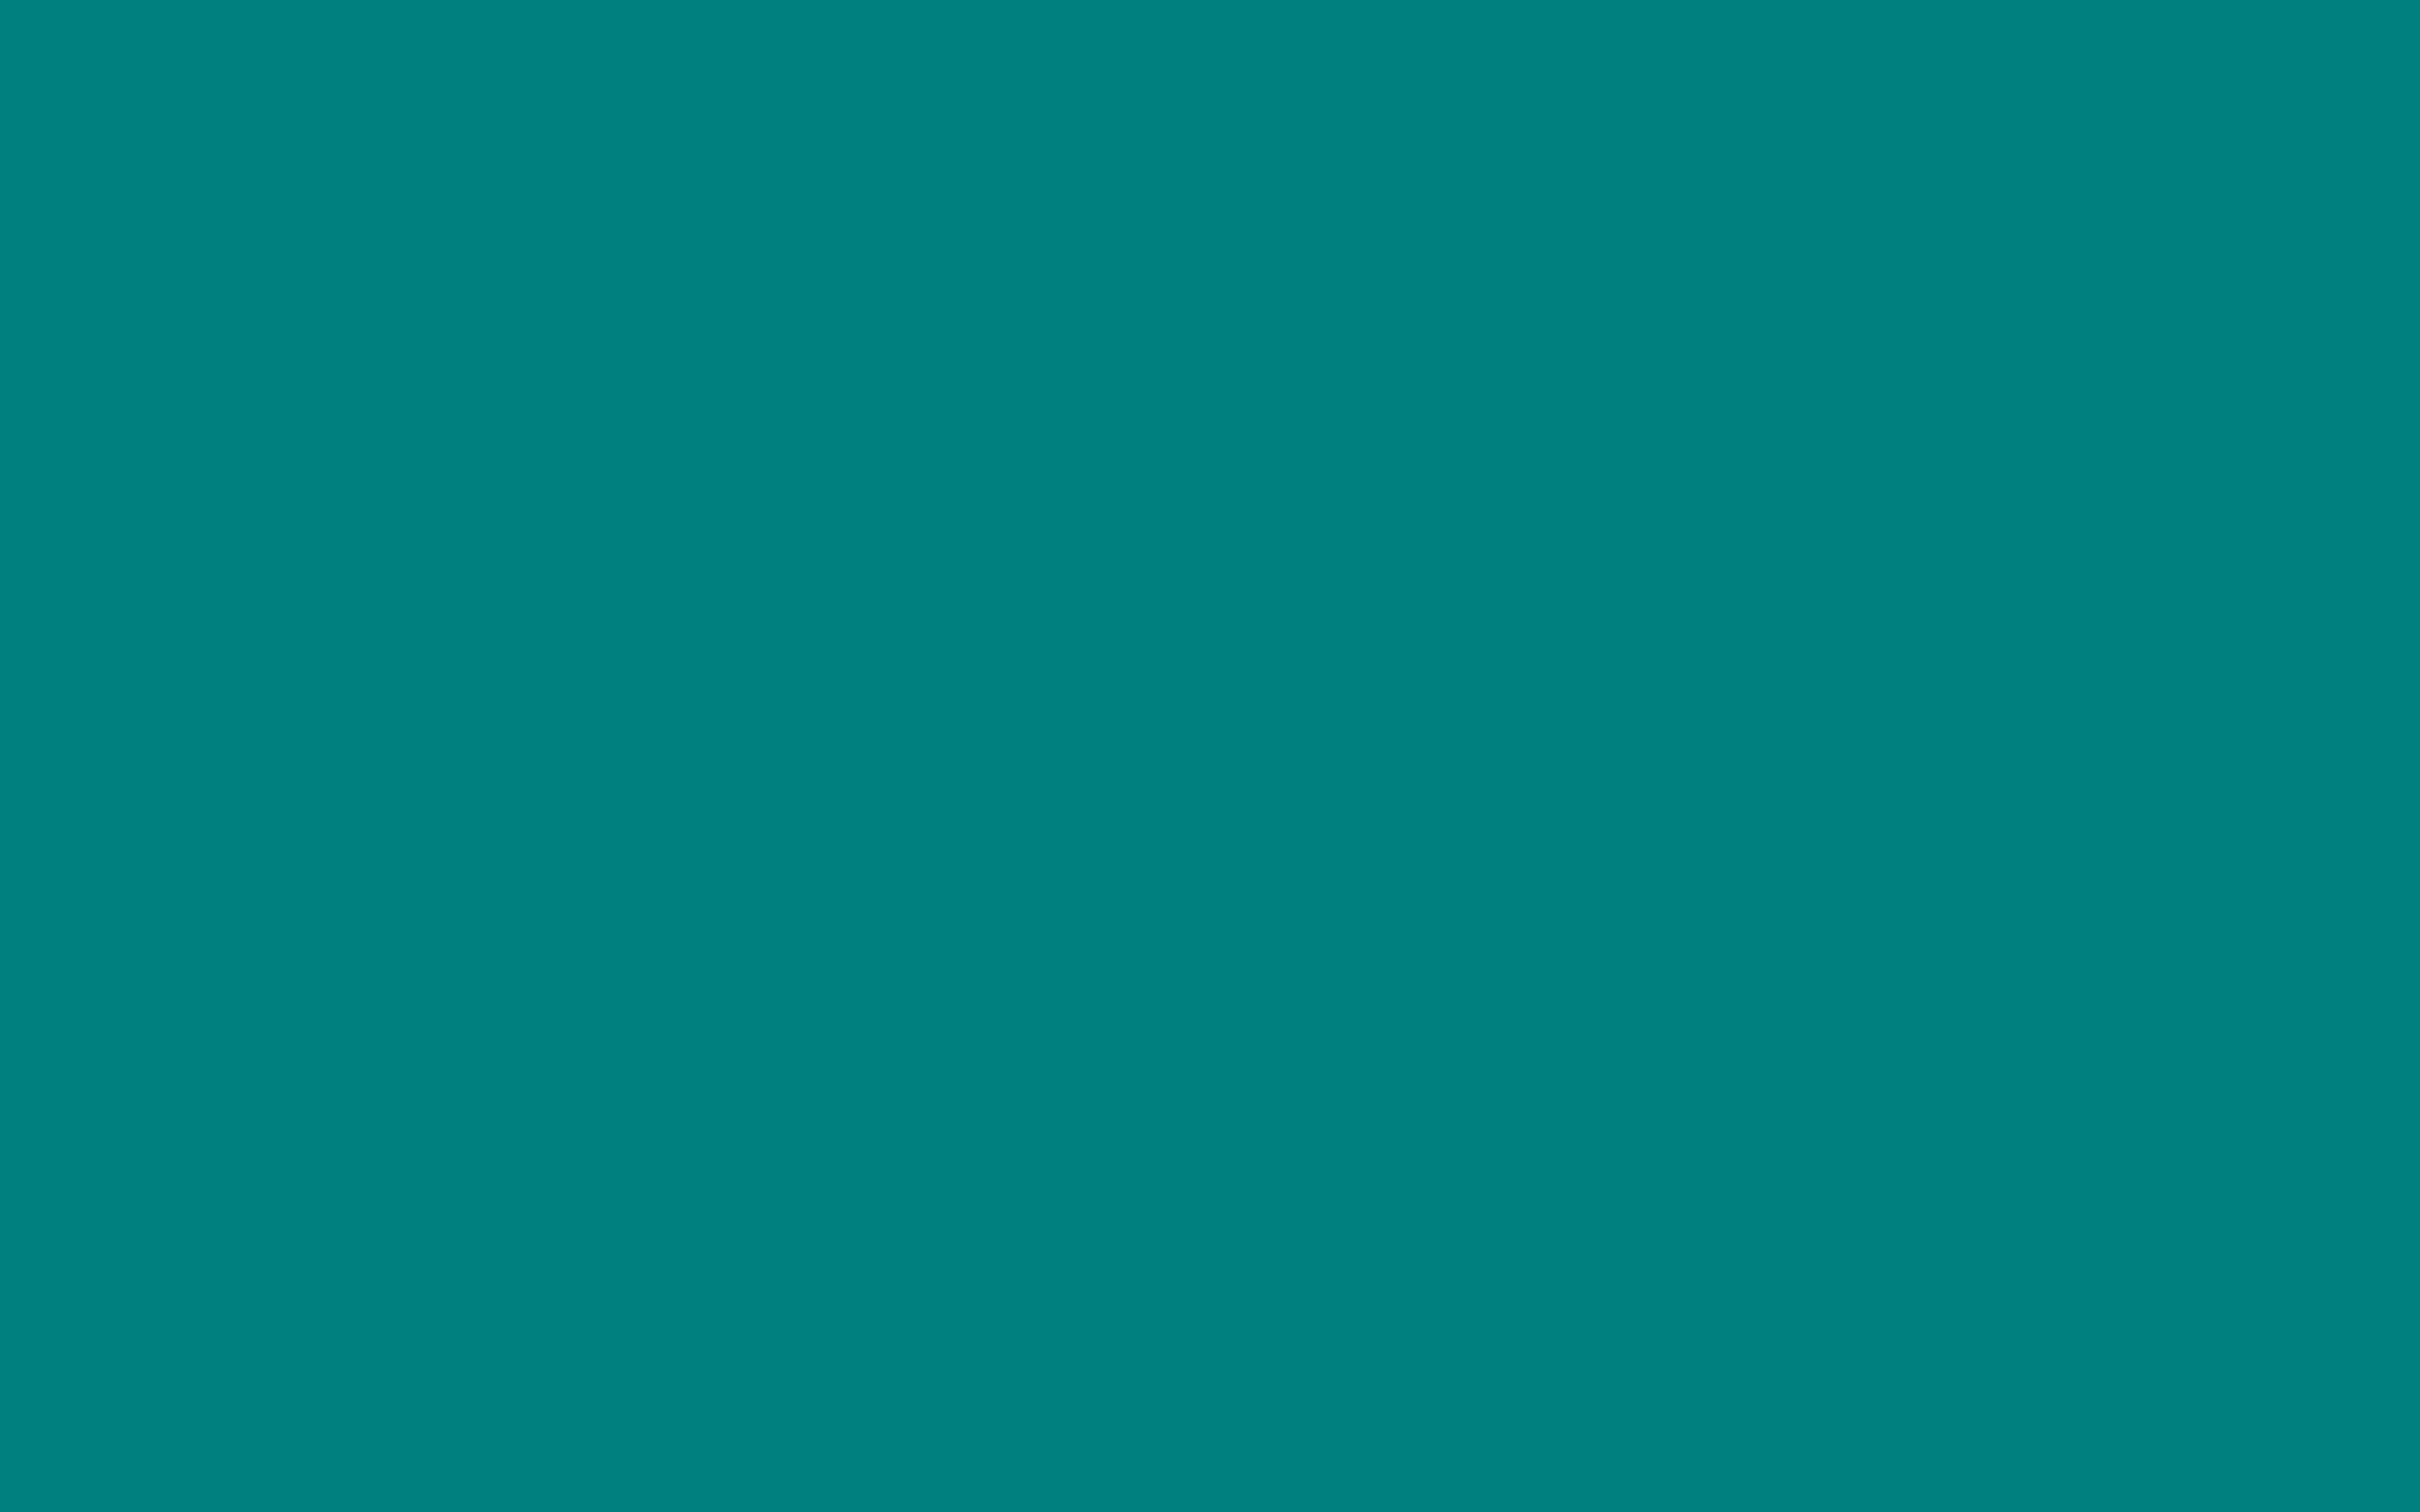 2880x1800 Teal Solid Color Background